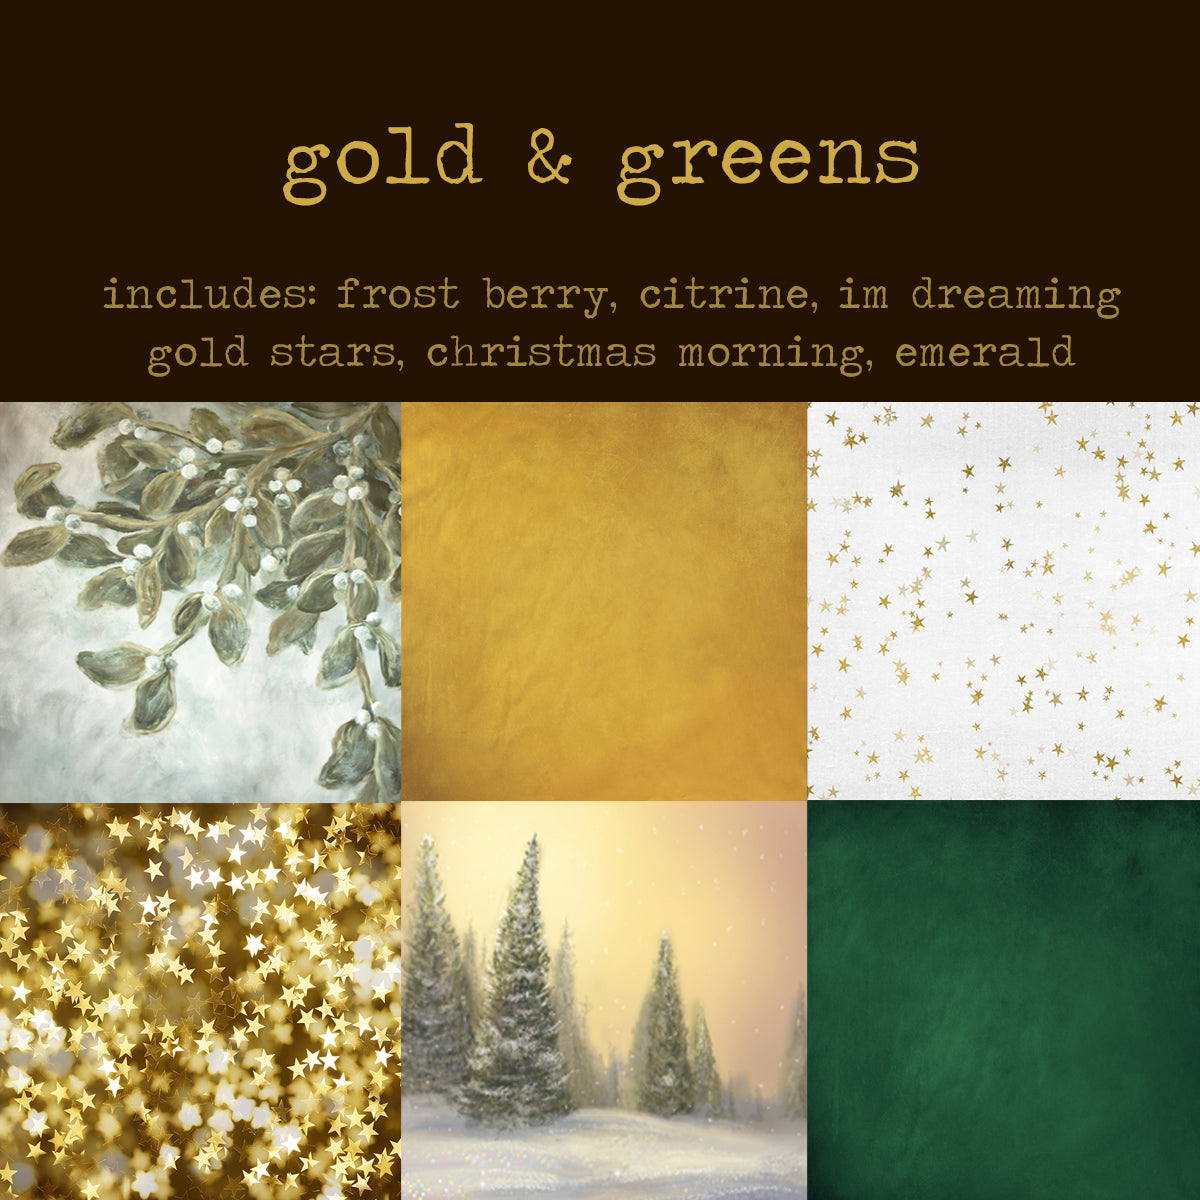 To-Go Pack - Gold & Greens